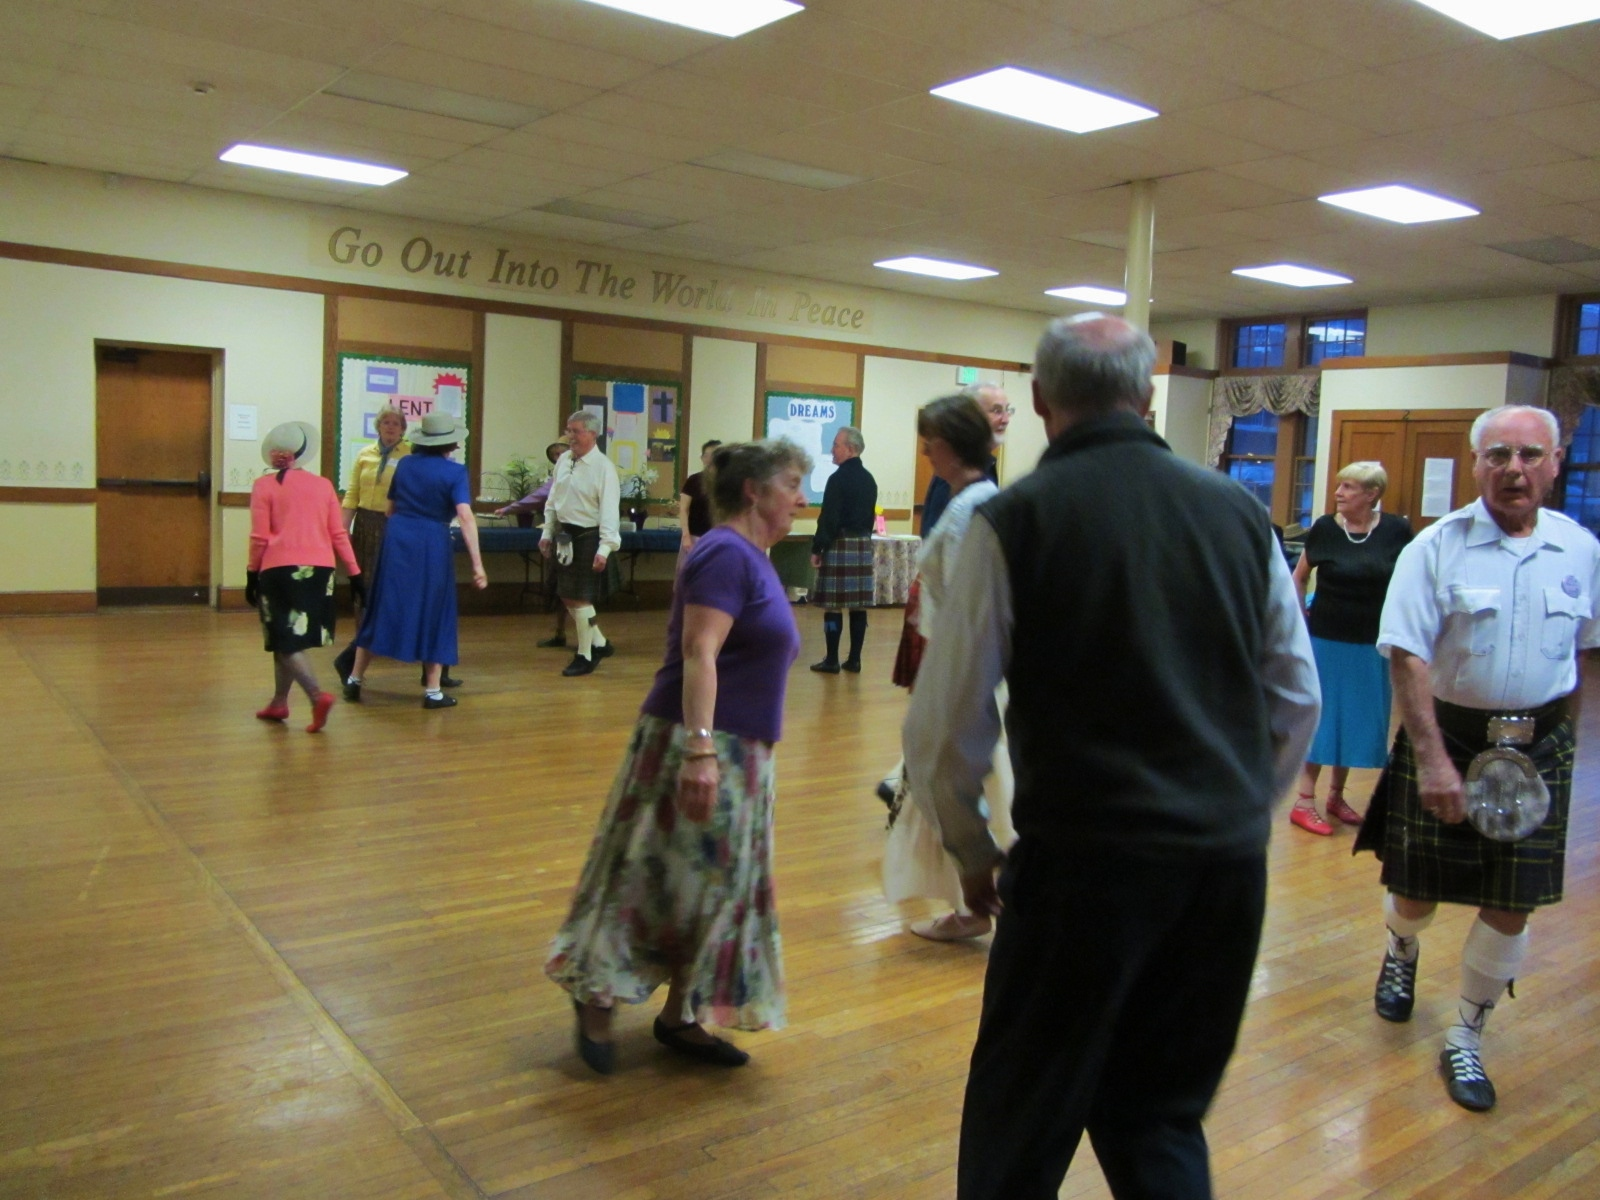 IMG_1386 - Middletown Tea Dance 2014